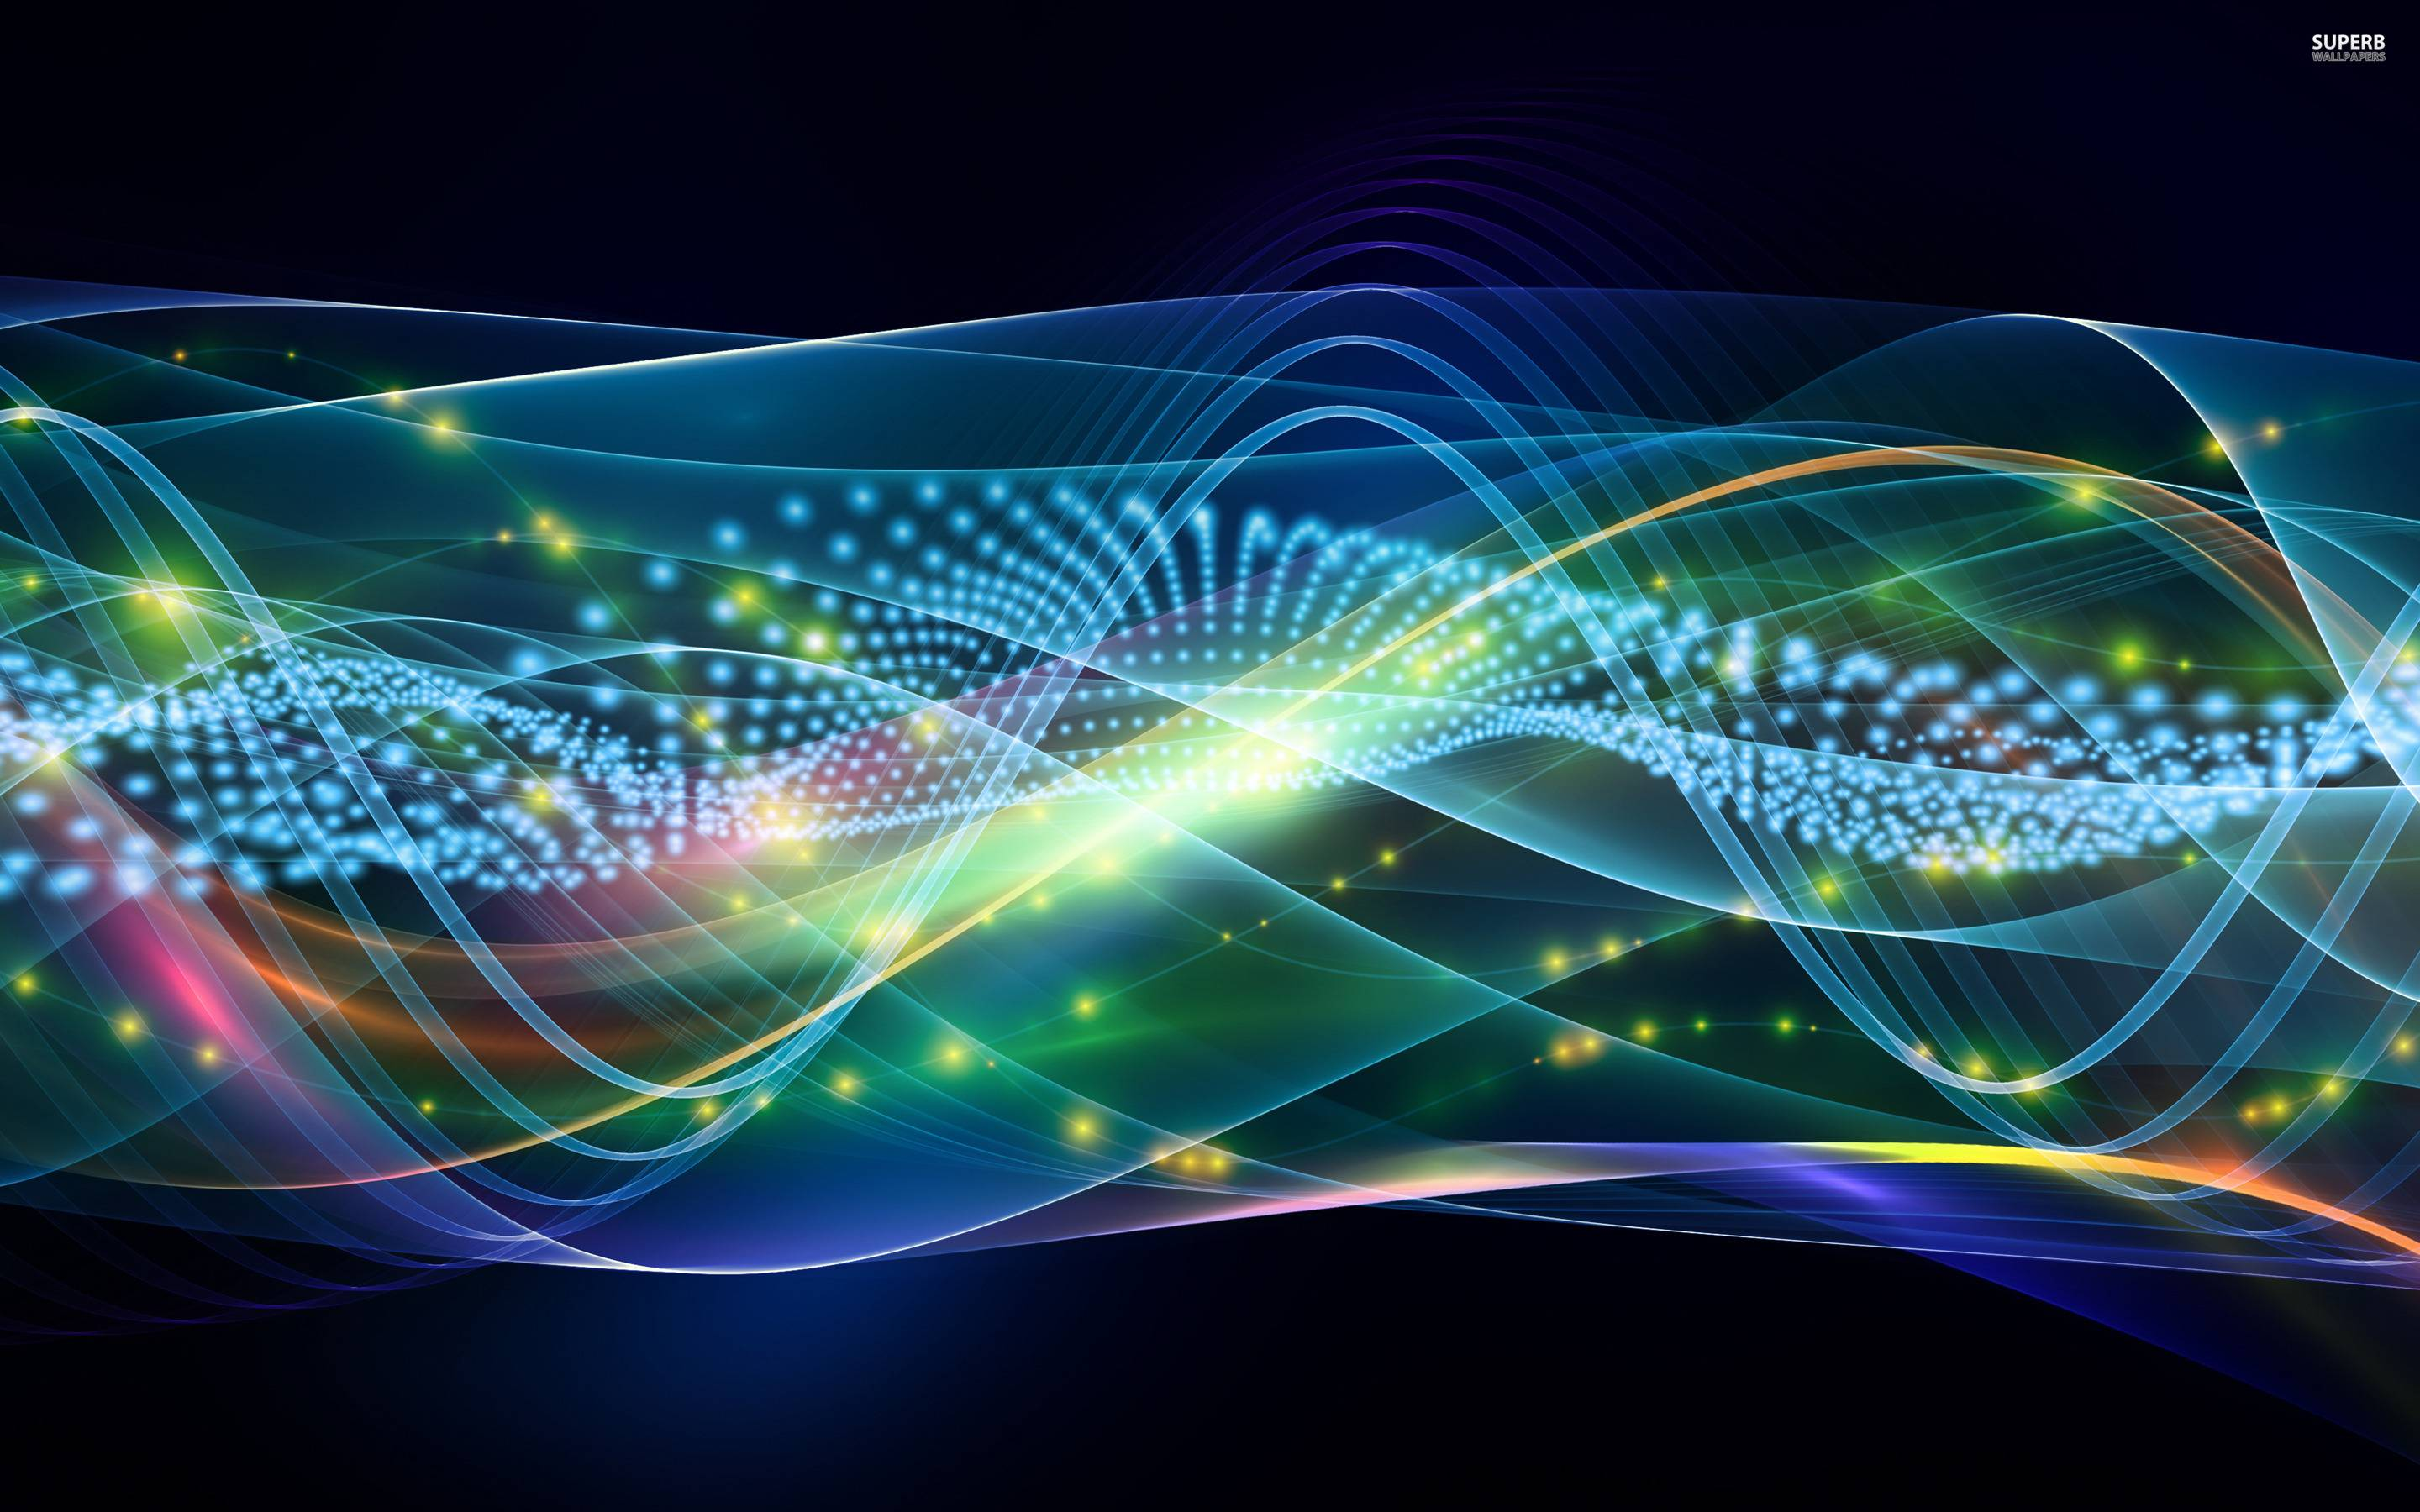 Music Wave Wallpaper Sound wave wallpapers   wallpaper cave 2880x1800